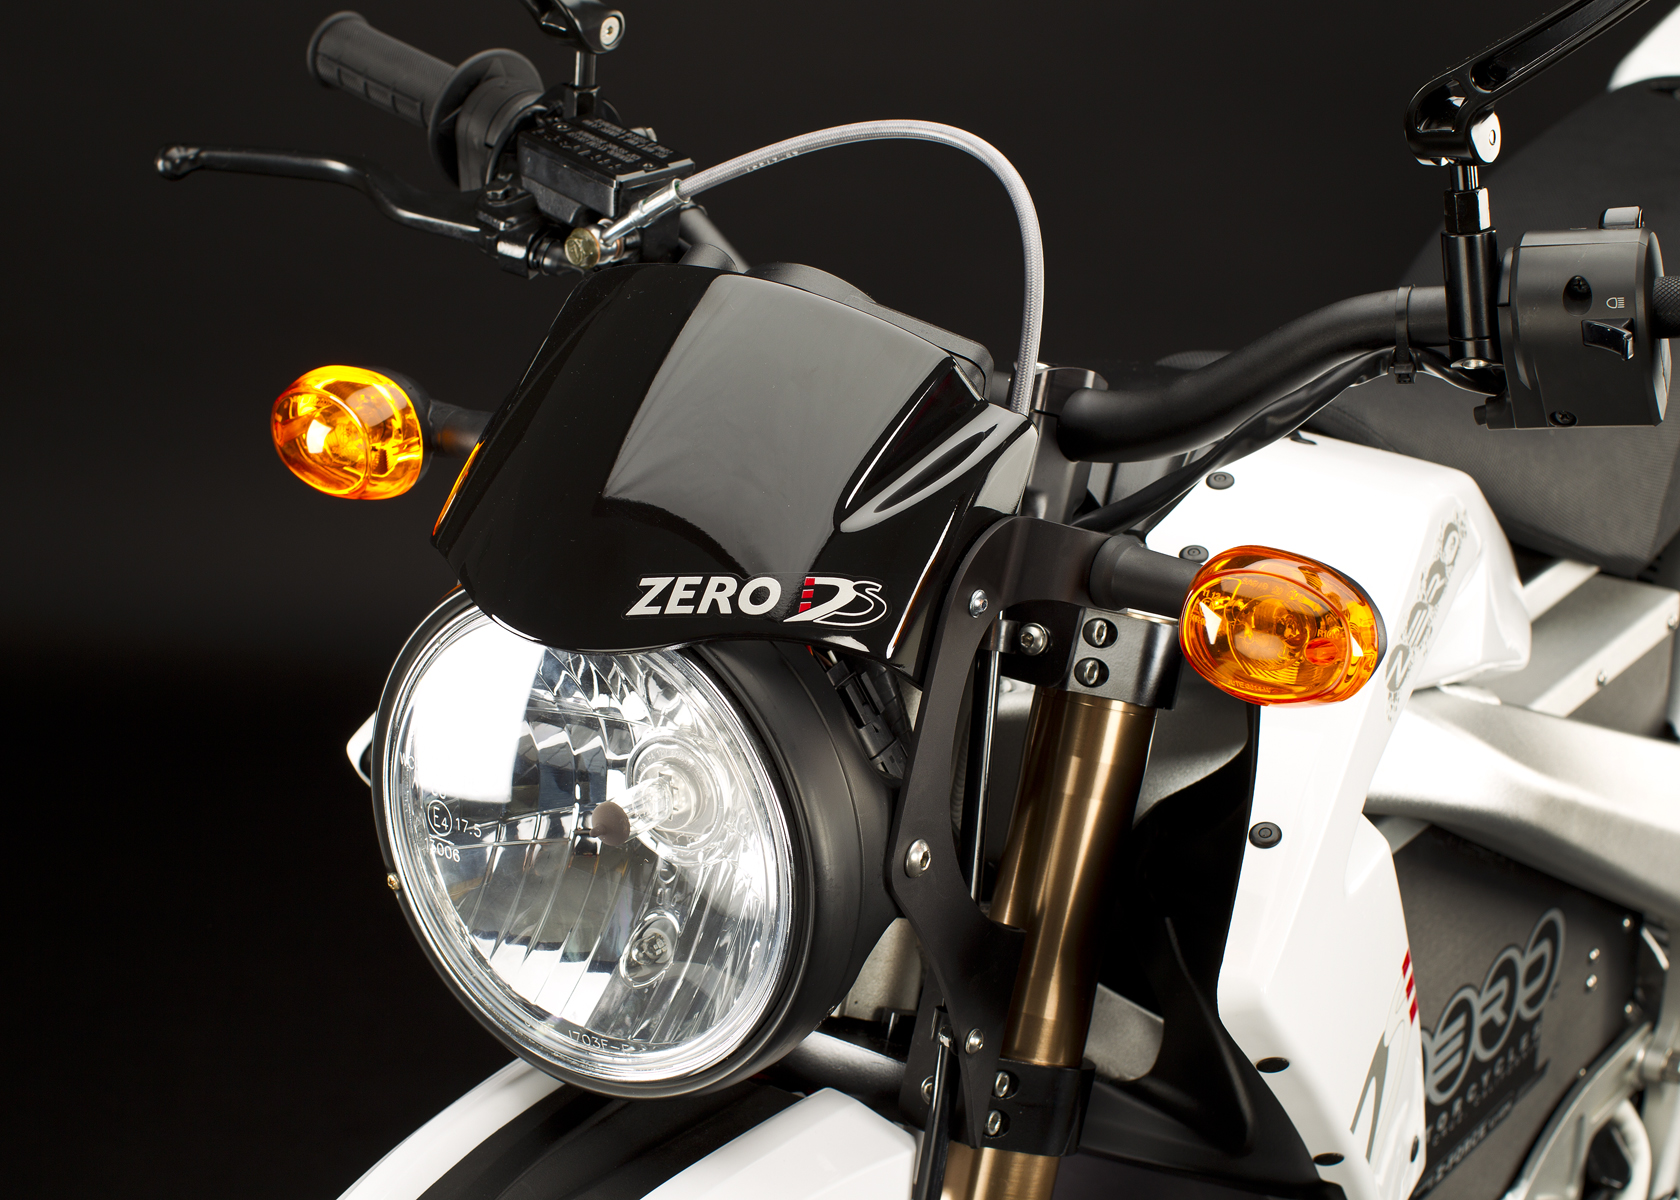 2011 Zero DS Electric Motorcycle: Headlight